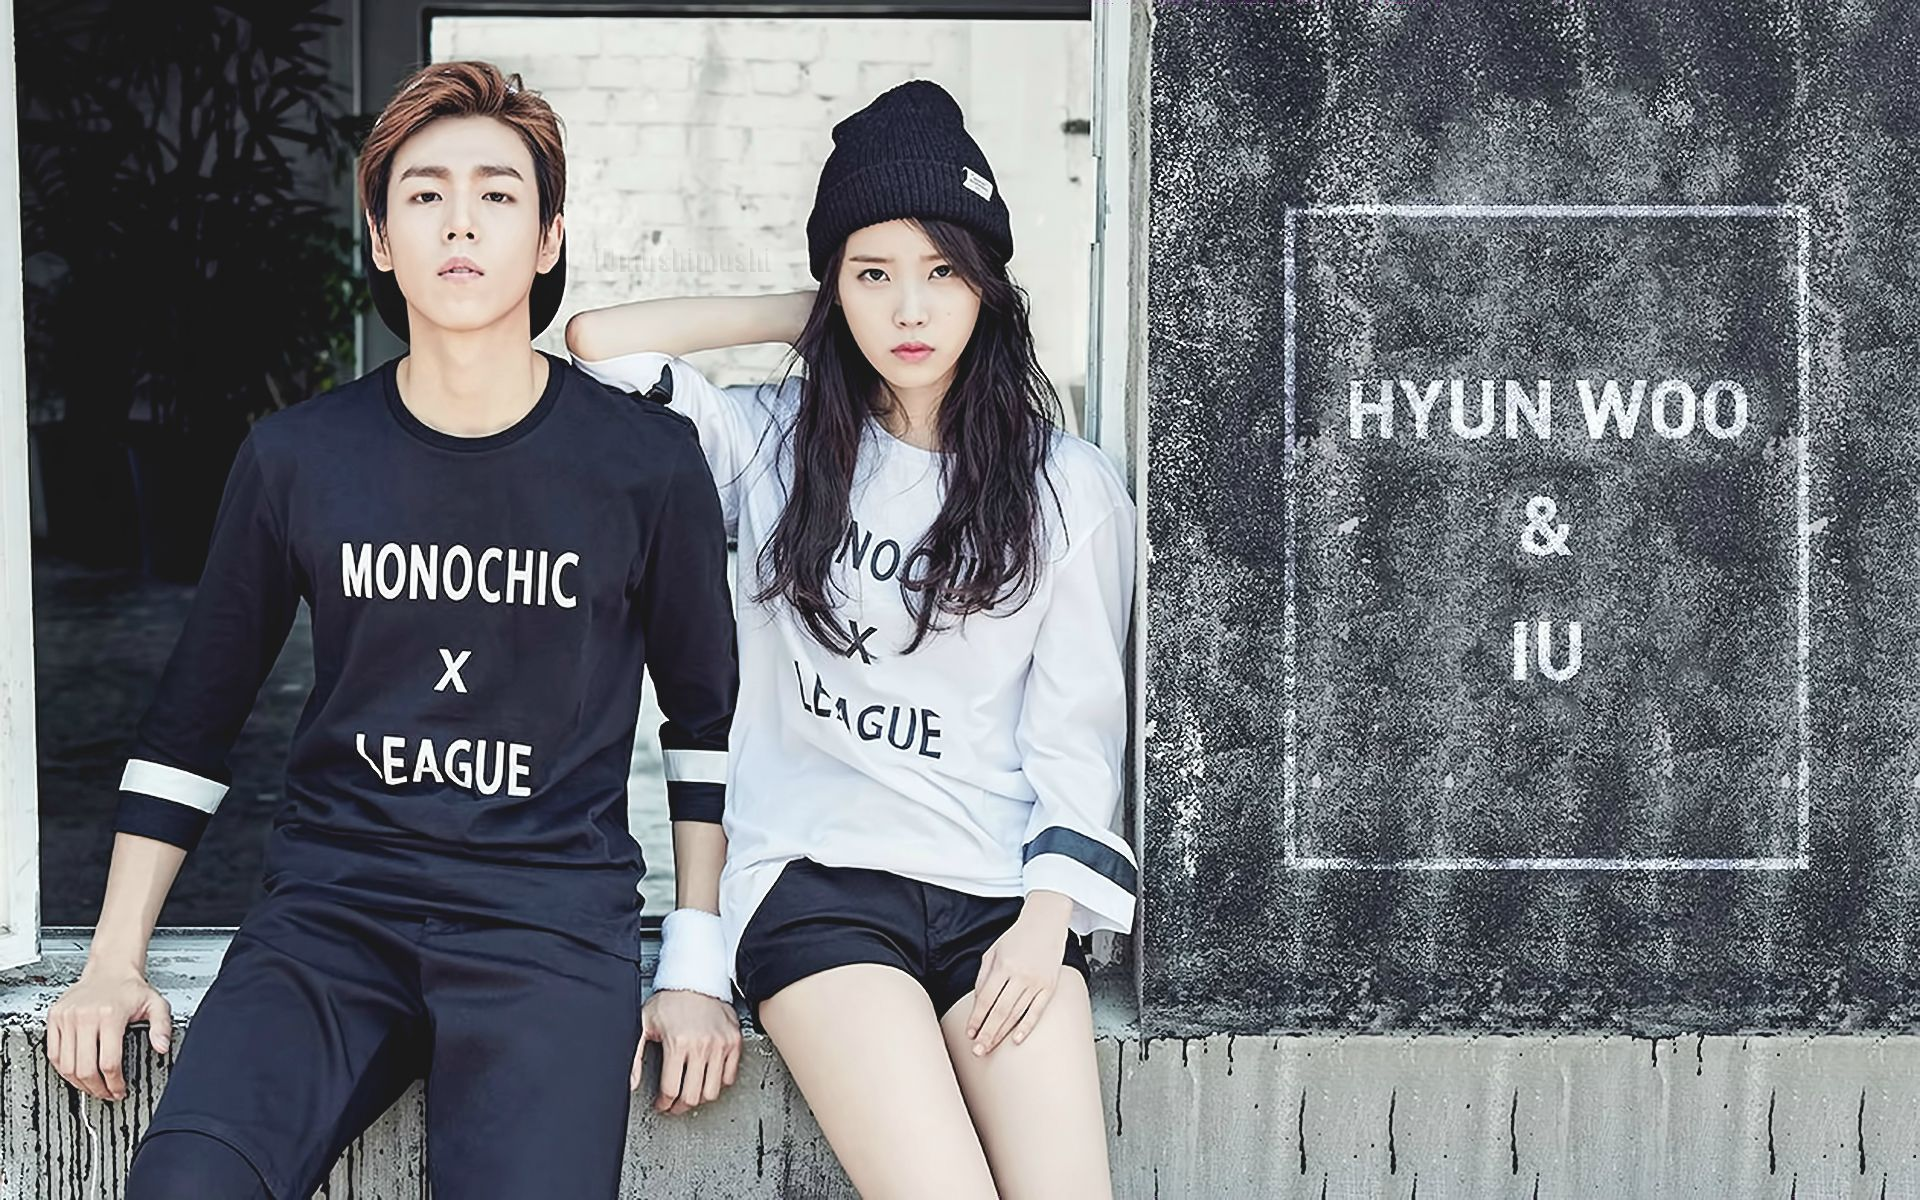 iu and Lee Hyun Woo 1920x1200